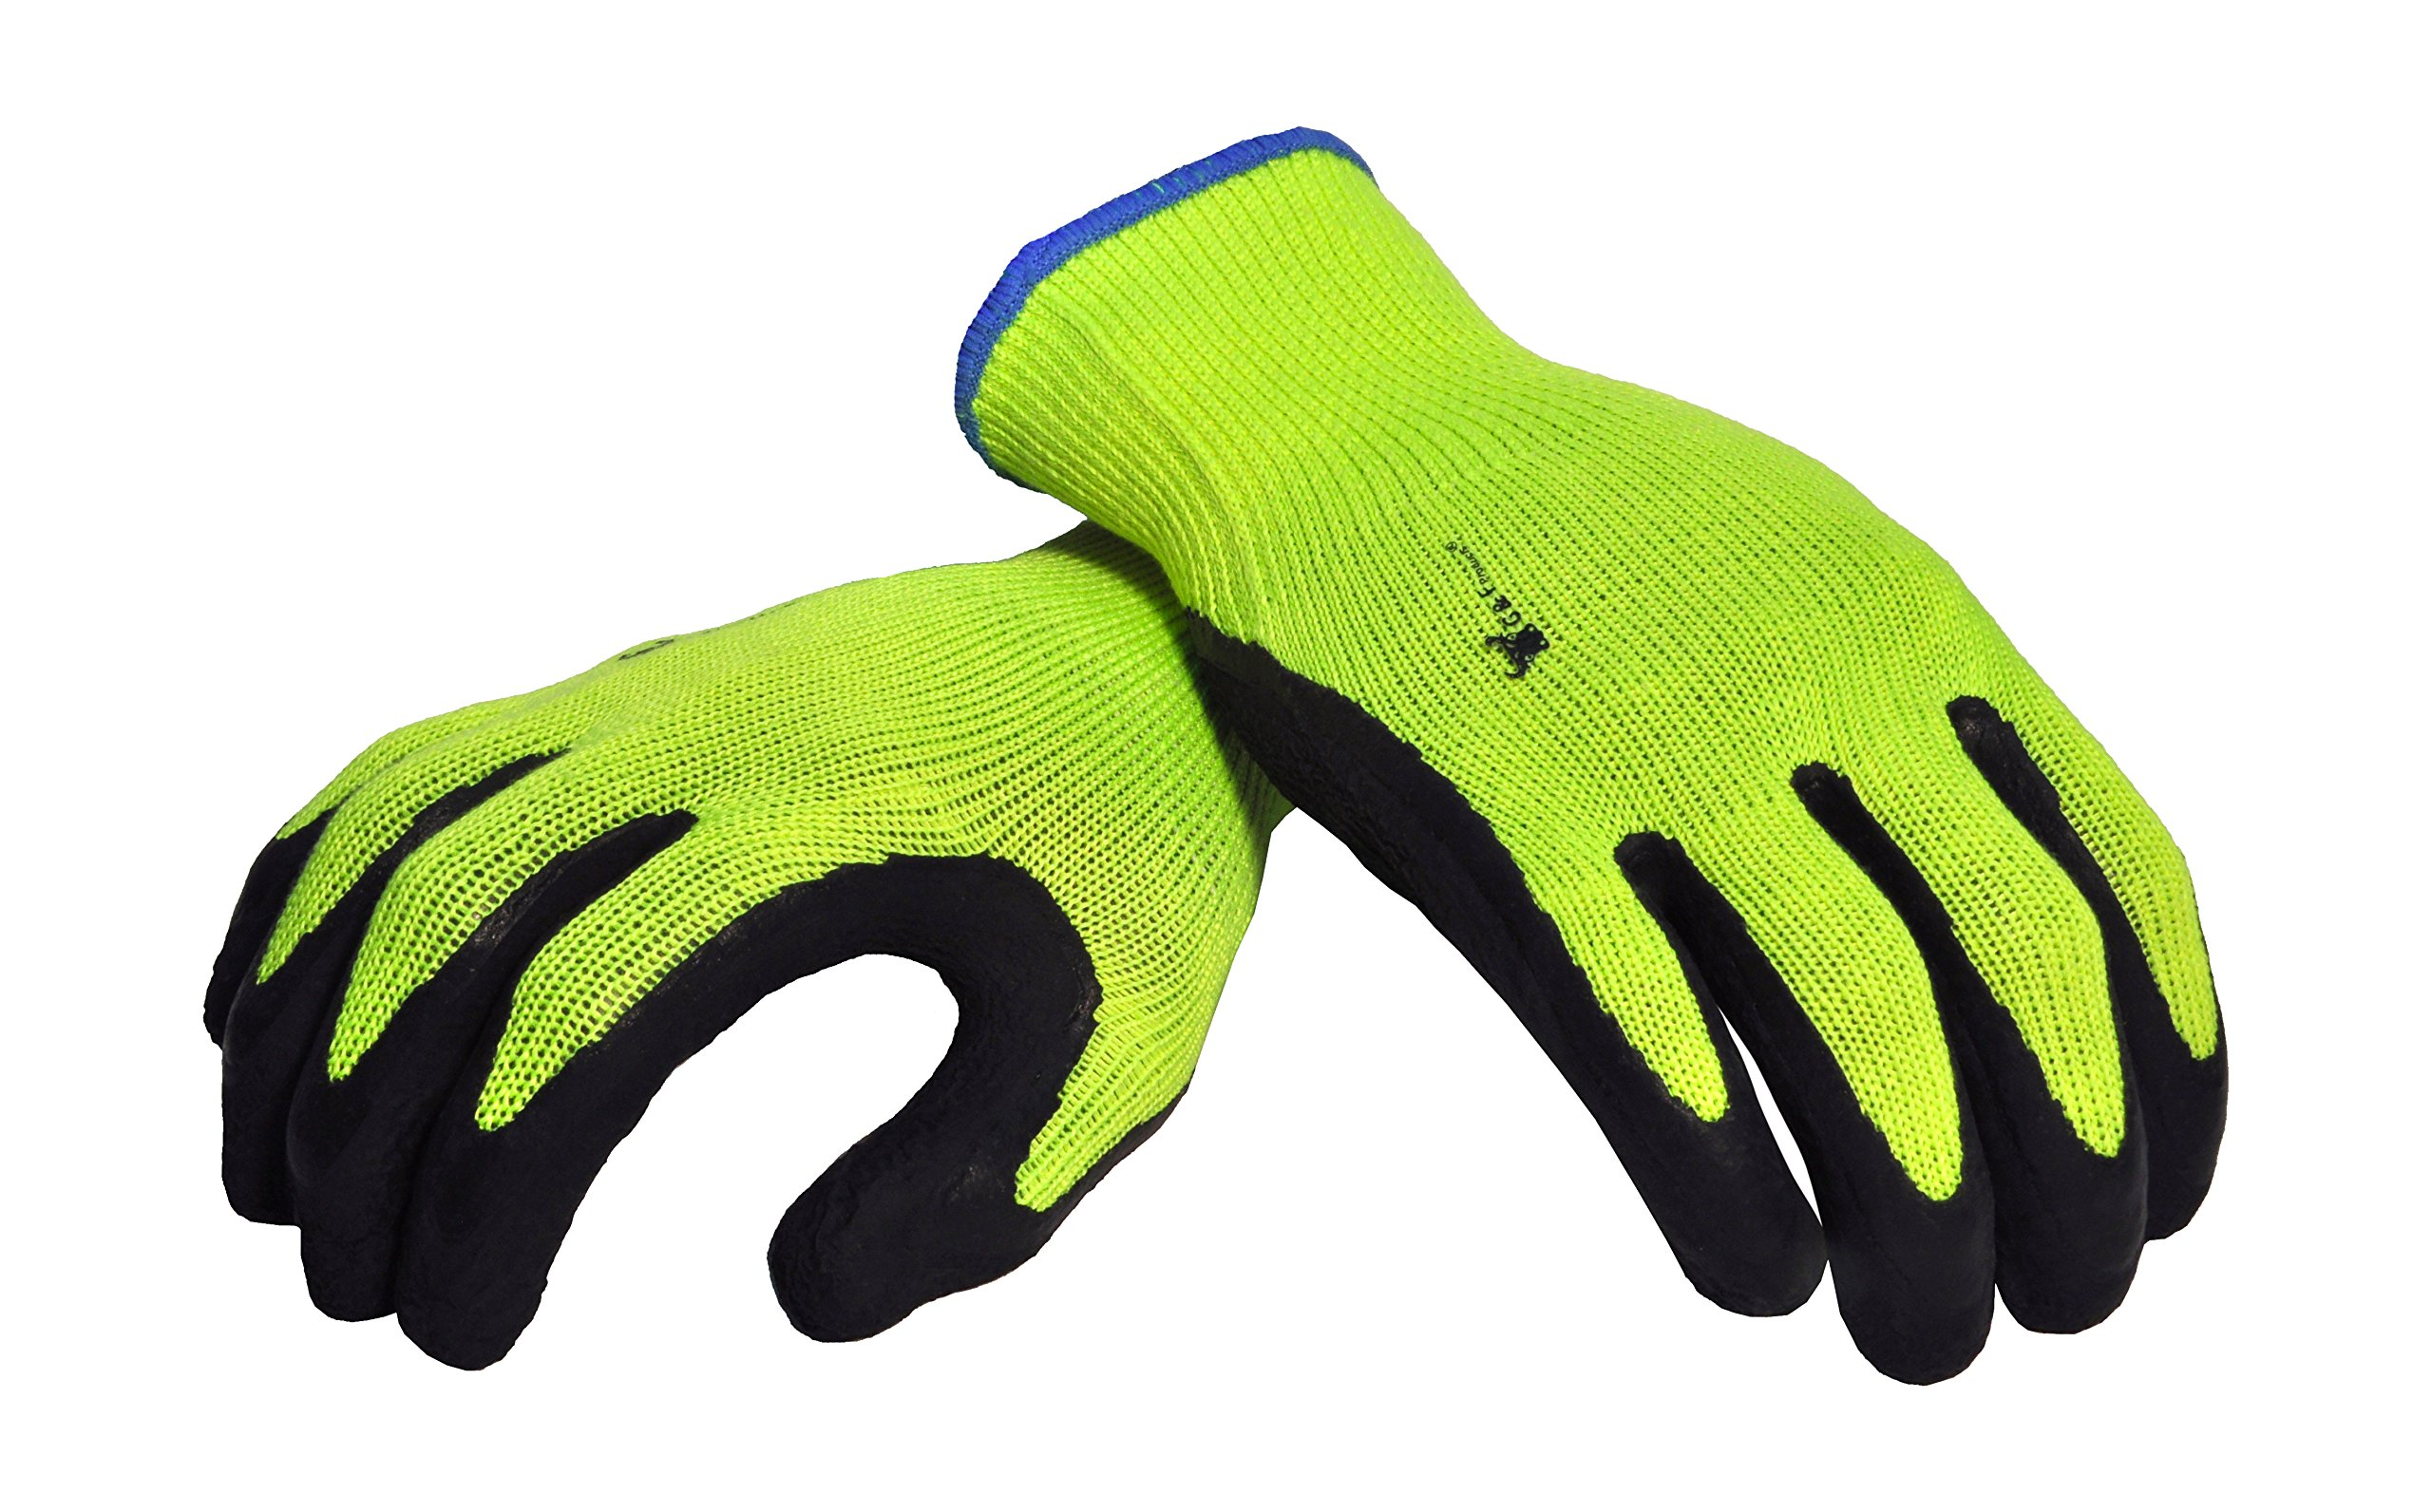 G & F 1516XL-3 Premium High Visibility Work Gloves for General Purpose, MicroFoam Double Textured Latex Coated Work Gloves, Garden Gloves, Men and Women Work Gloves, XLarge, 3 Pair Pack by G & F Products (Image #1)